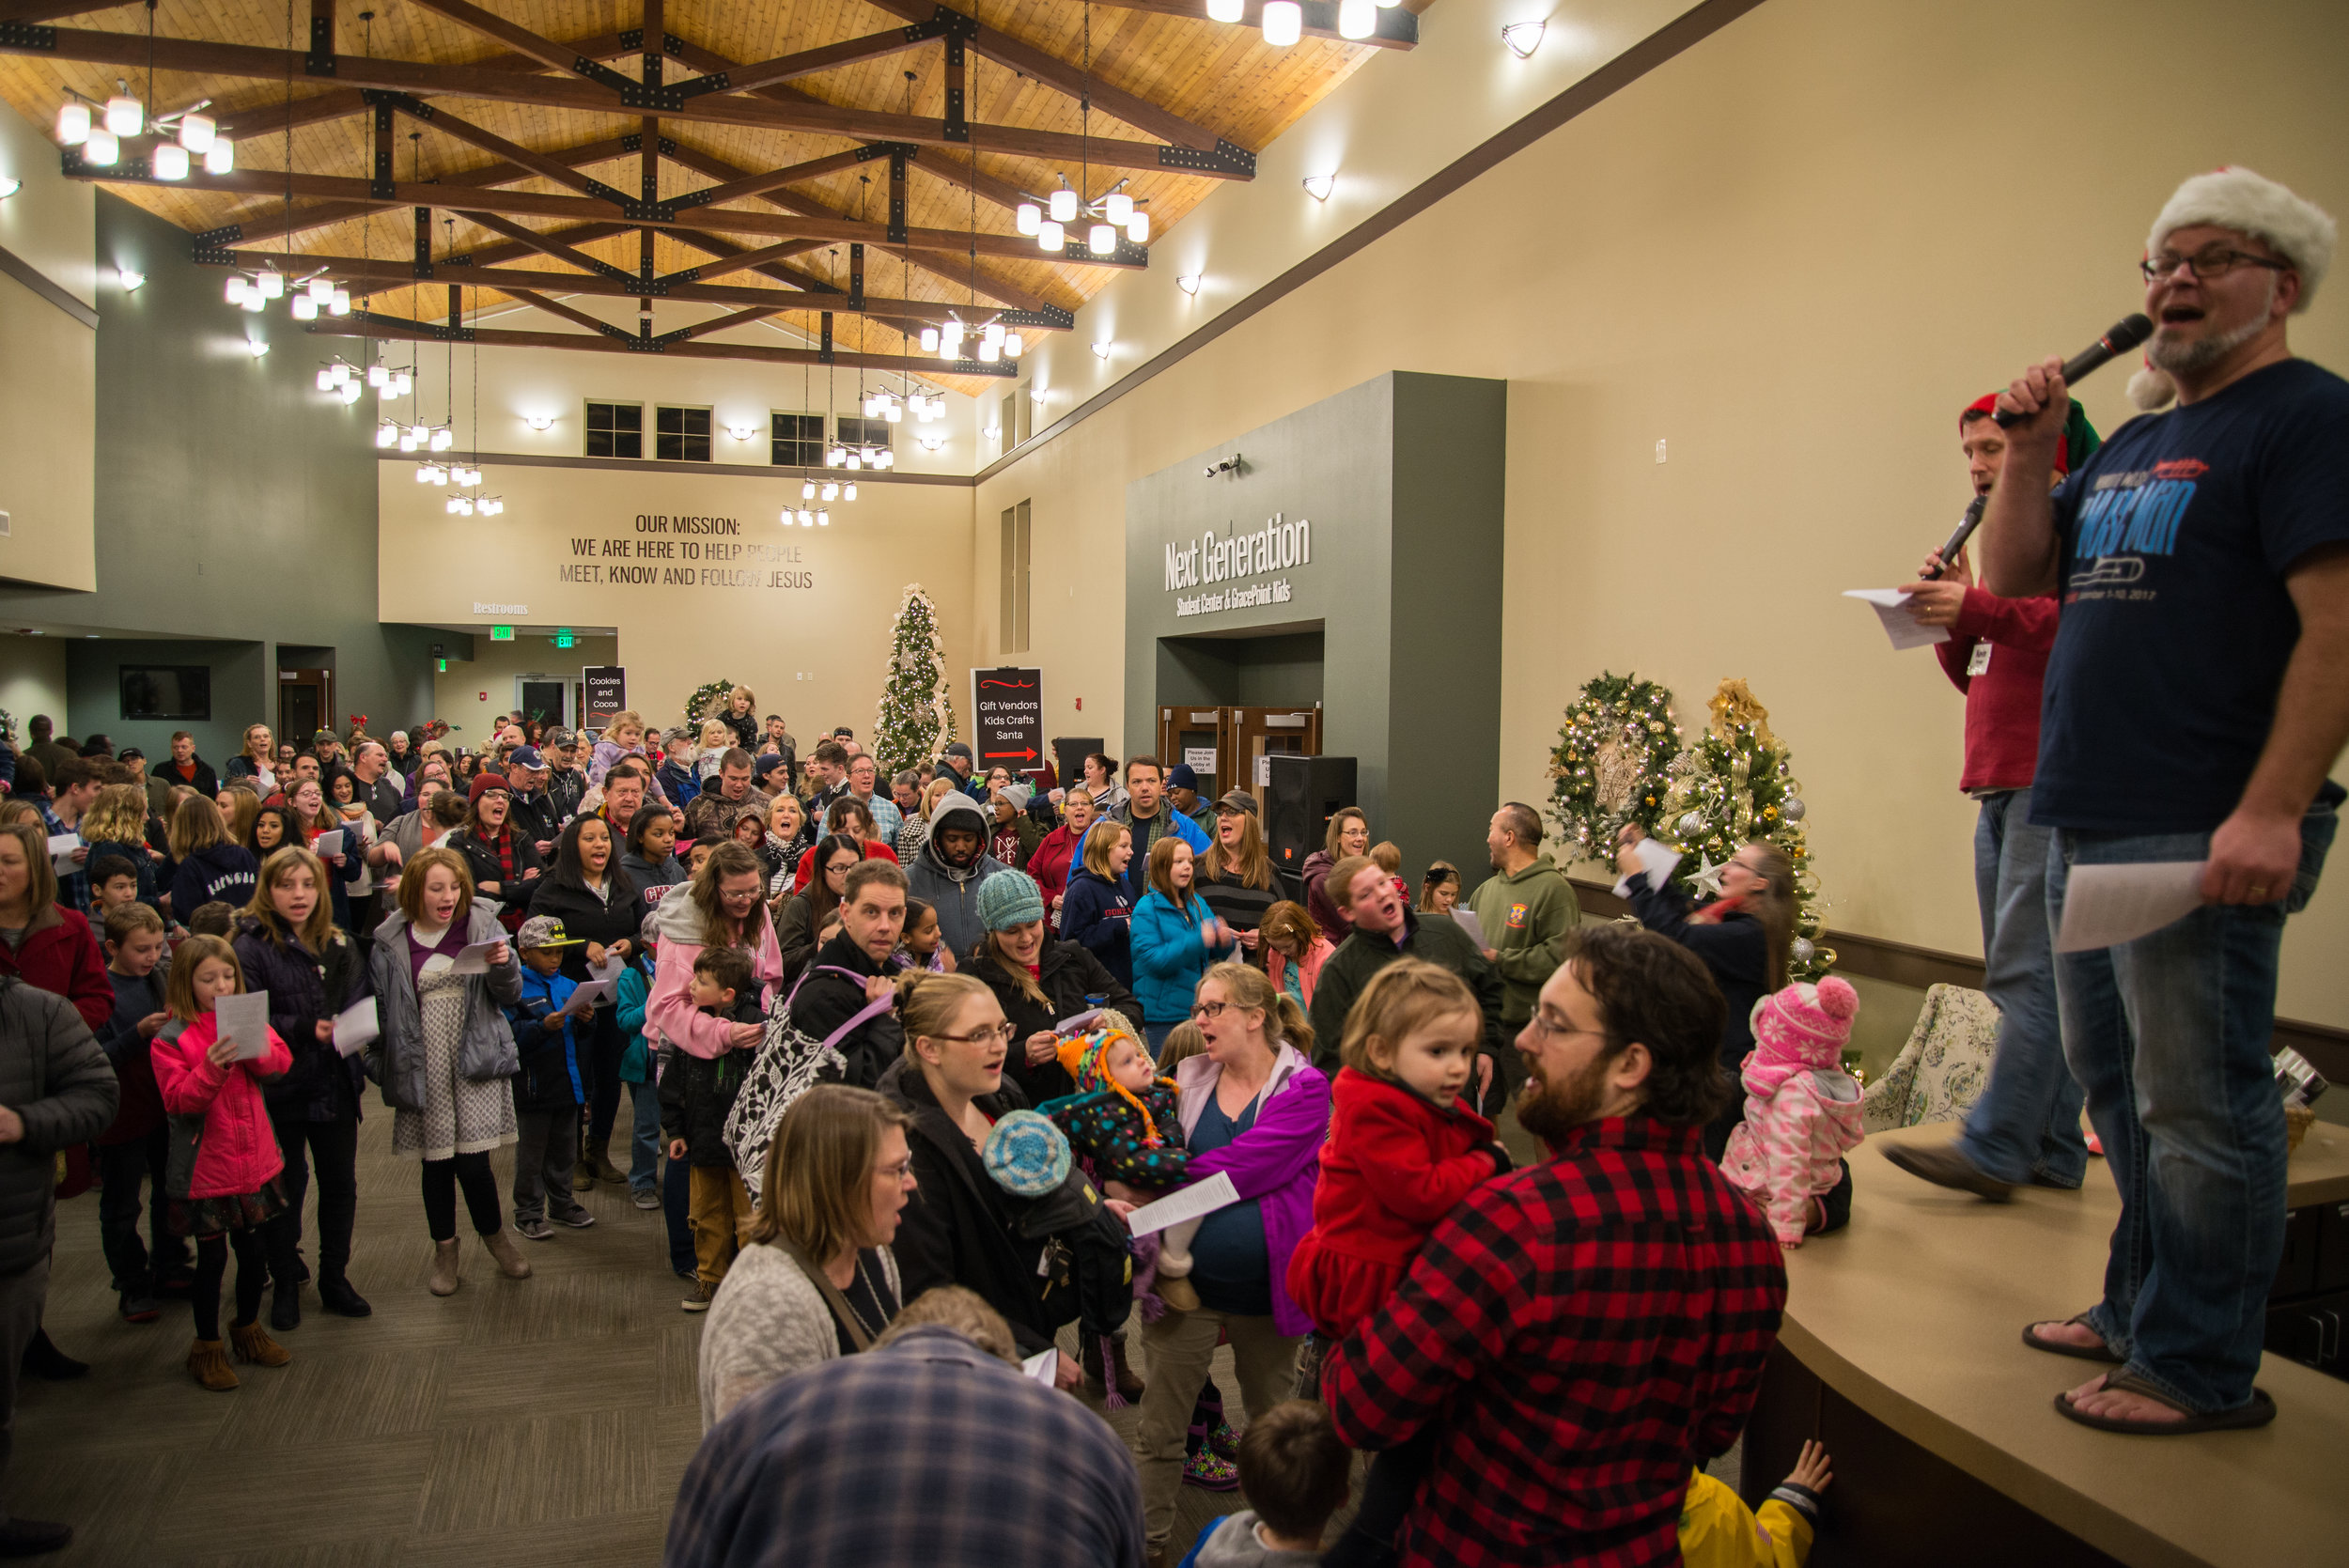 Carols and Lights - Sing some favorites and stroll outside for the tree lighting.